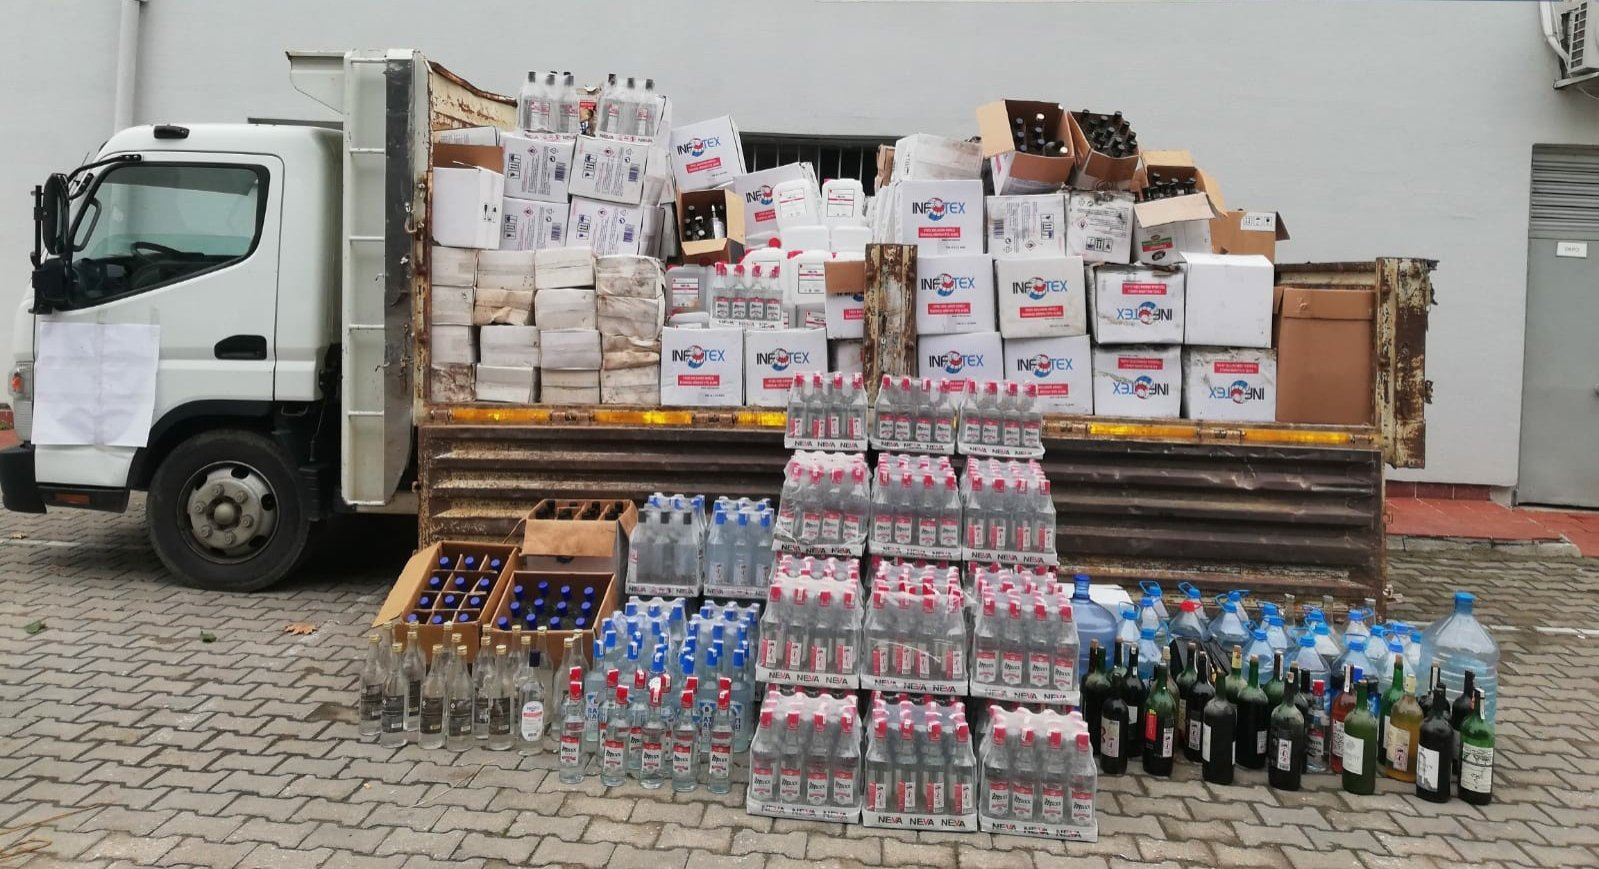 Bootleg alcohol seized in an operation on display, in Çanakkale, western Turkey, Oct. 23, 2020. (İHA Photo)